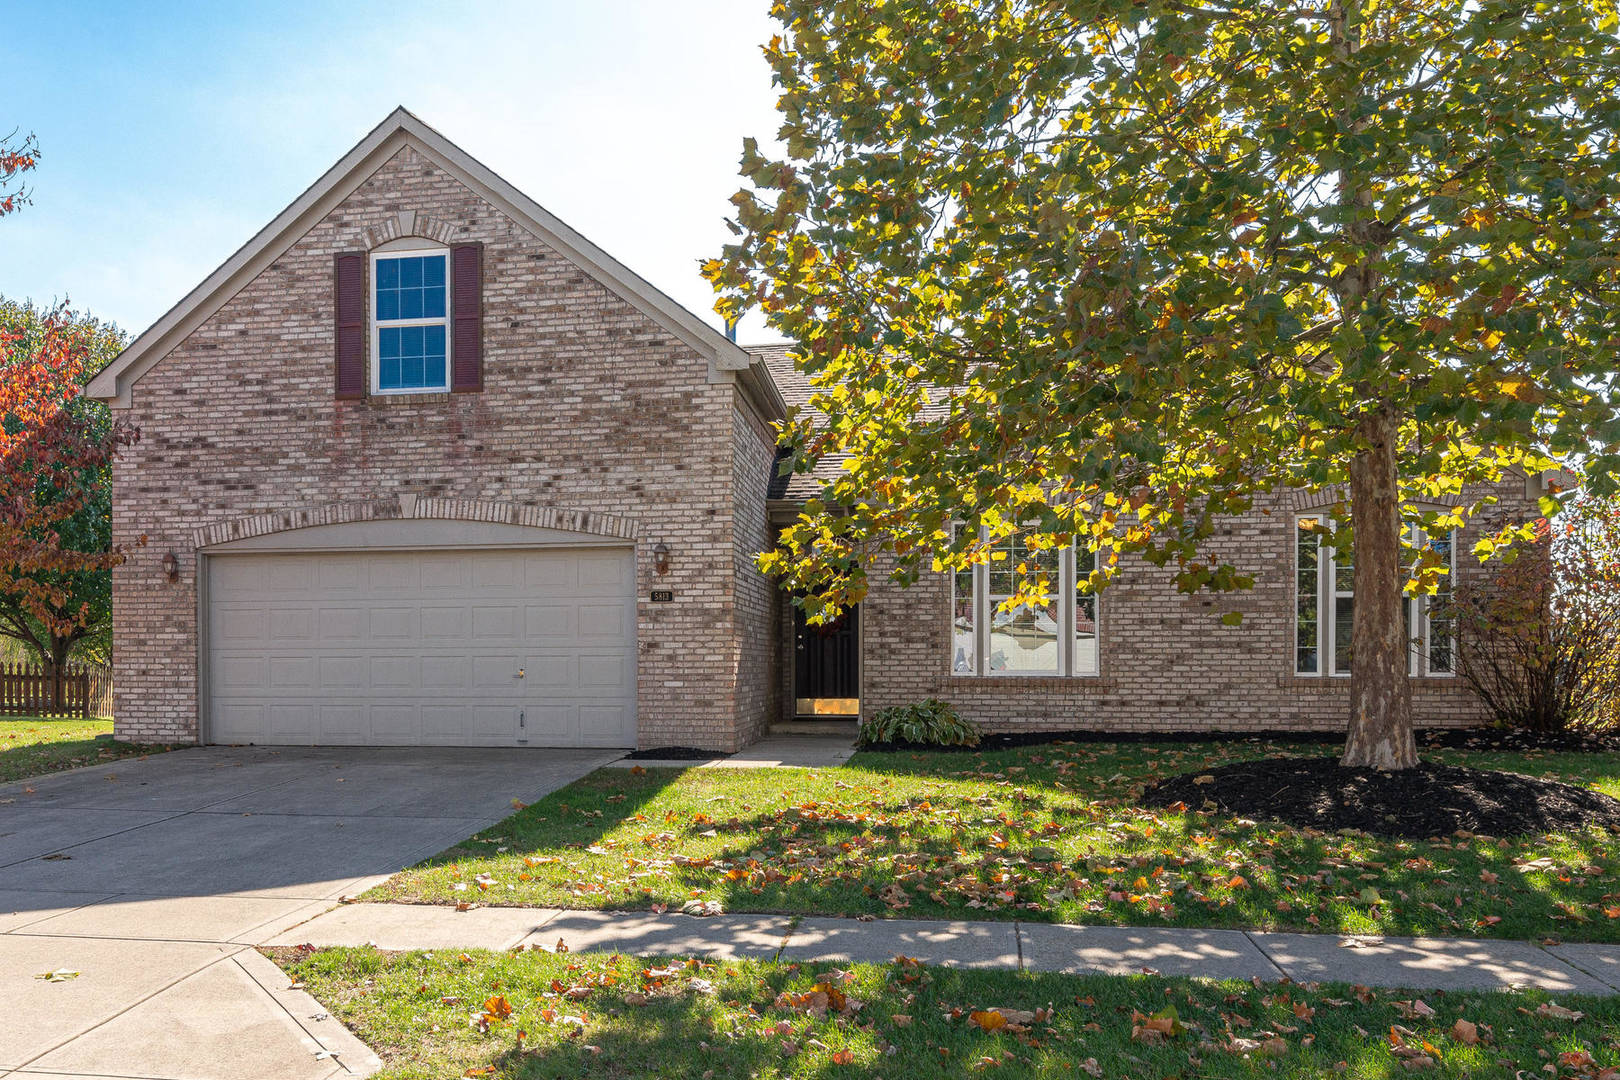 5813 W. Bayfield Dr. Mccordsville, IN 46055